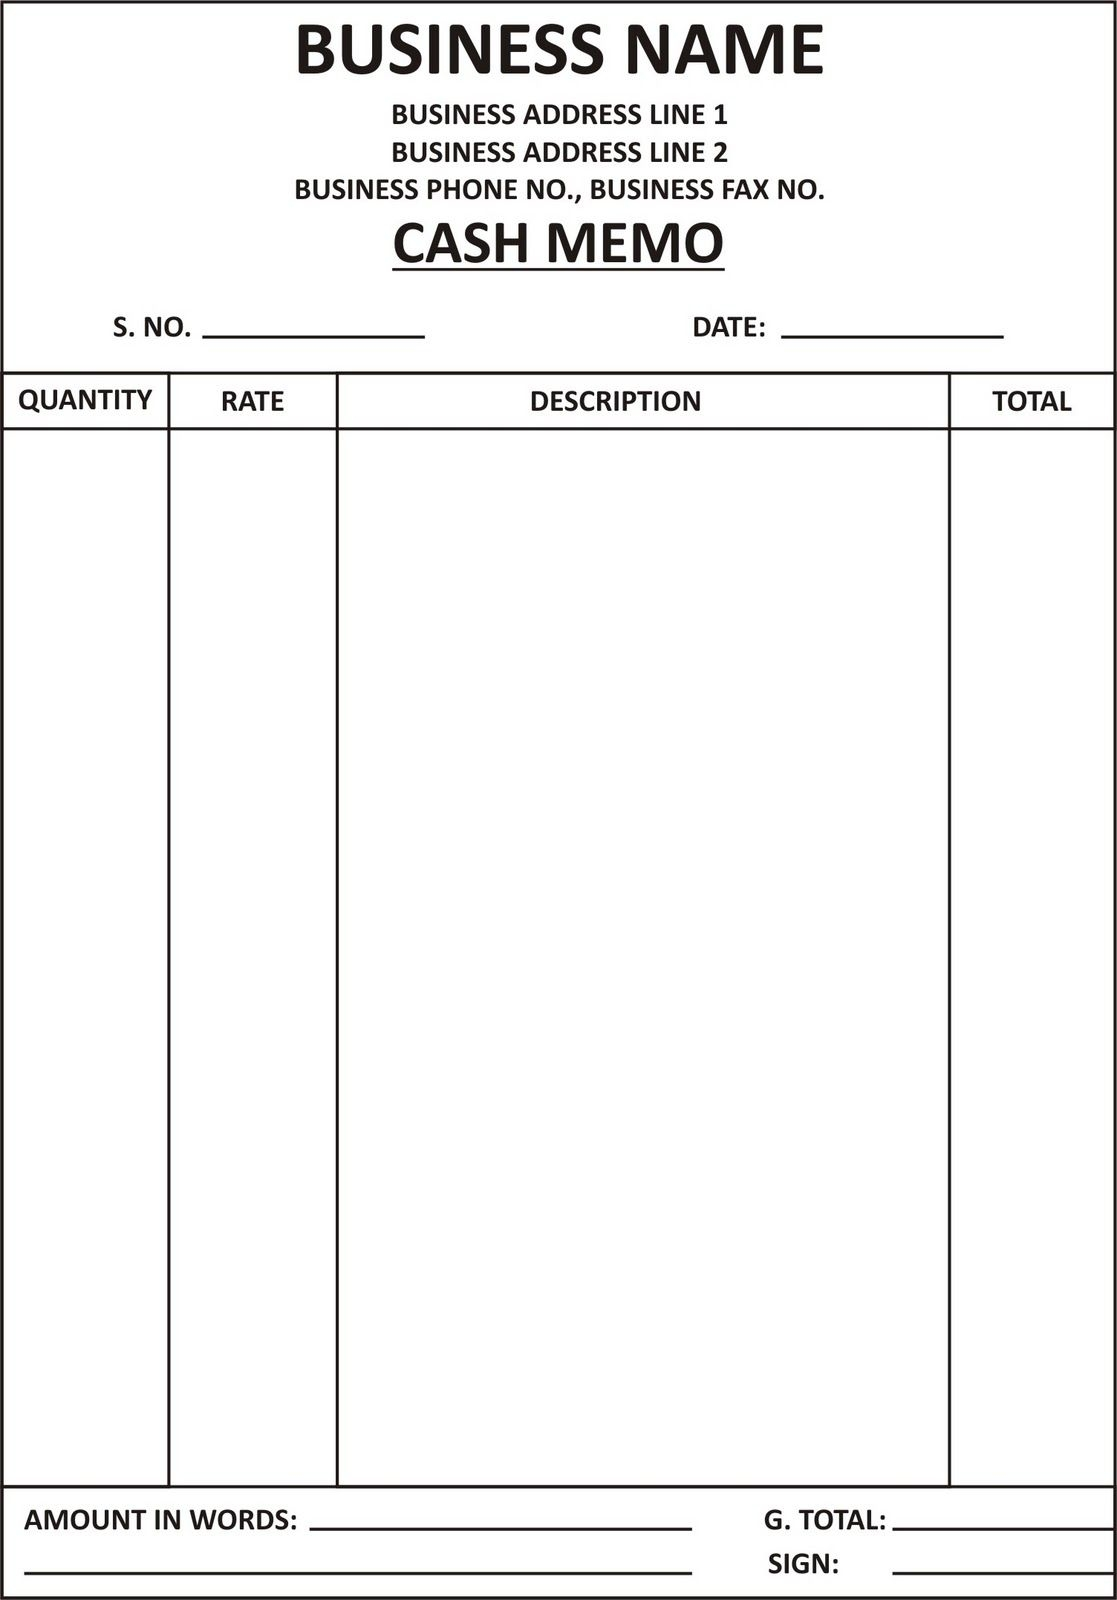 cash bill format submited images pic 2 fly al in 2019 blank mobile bill format